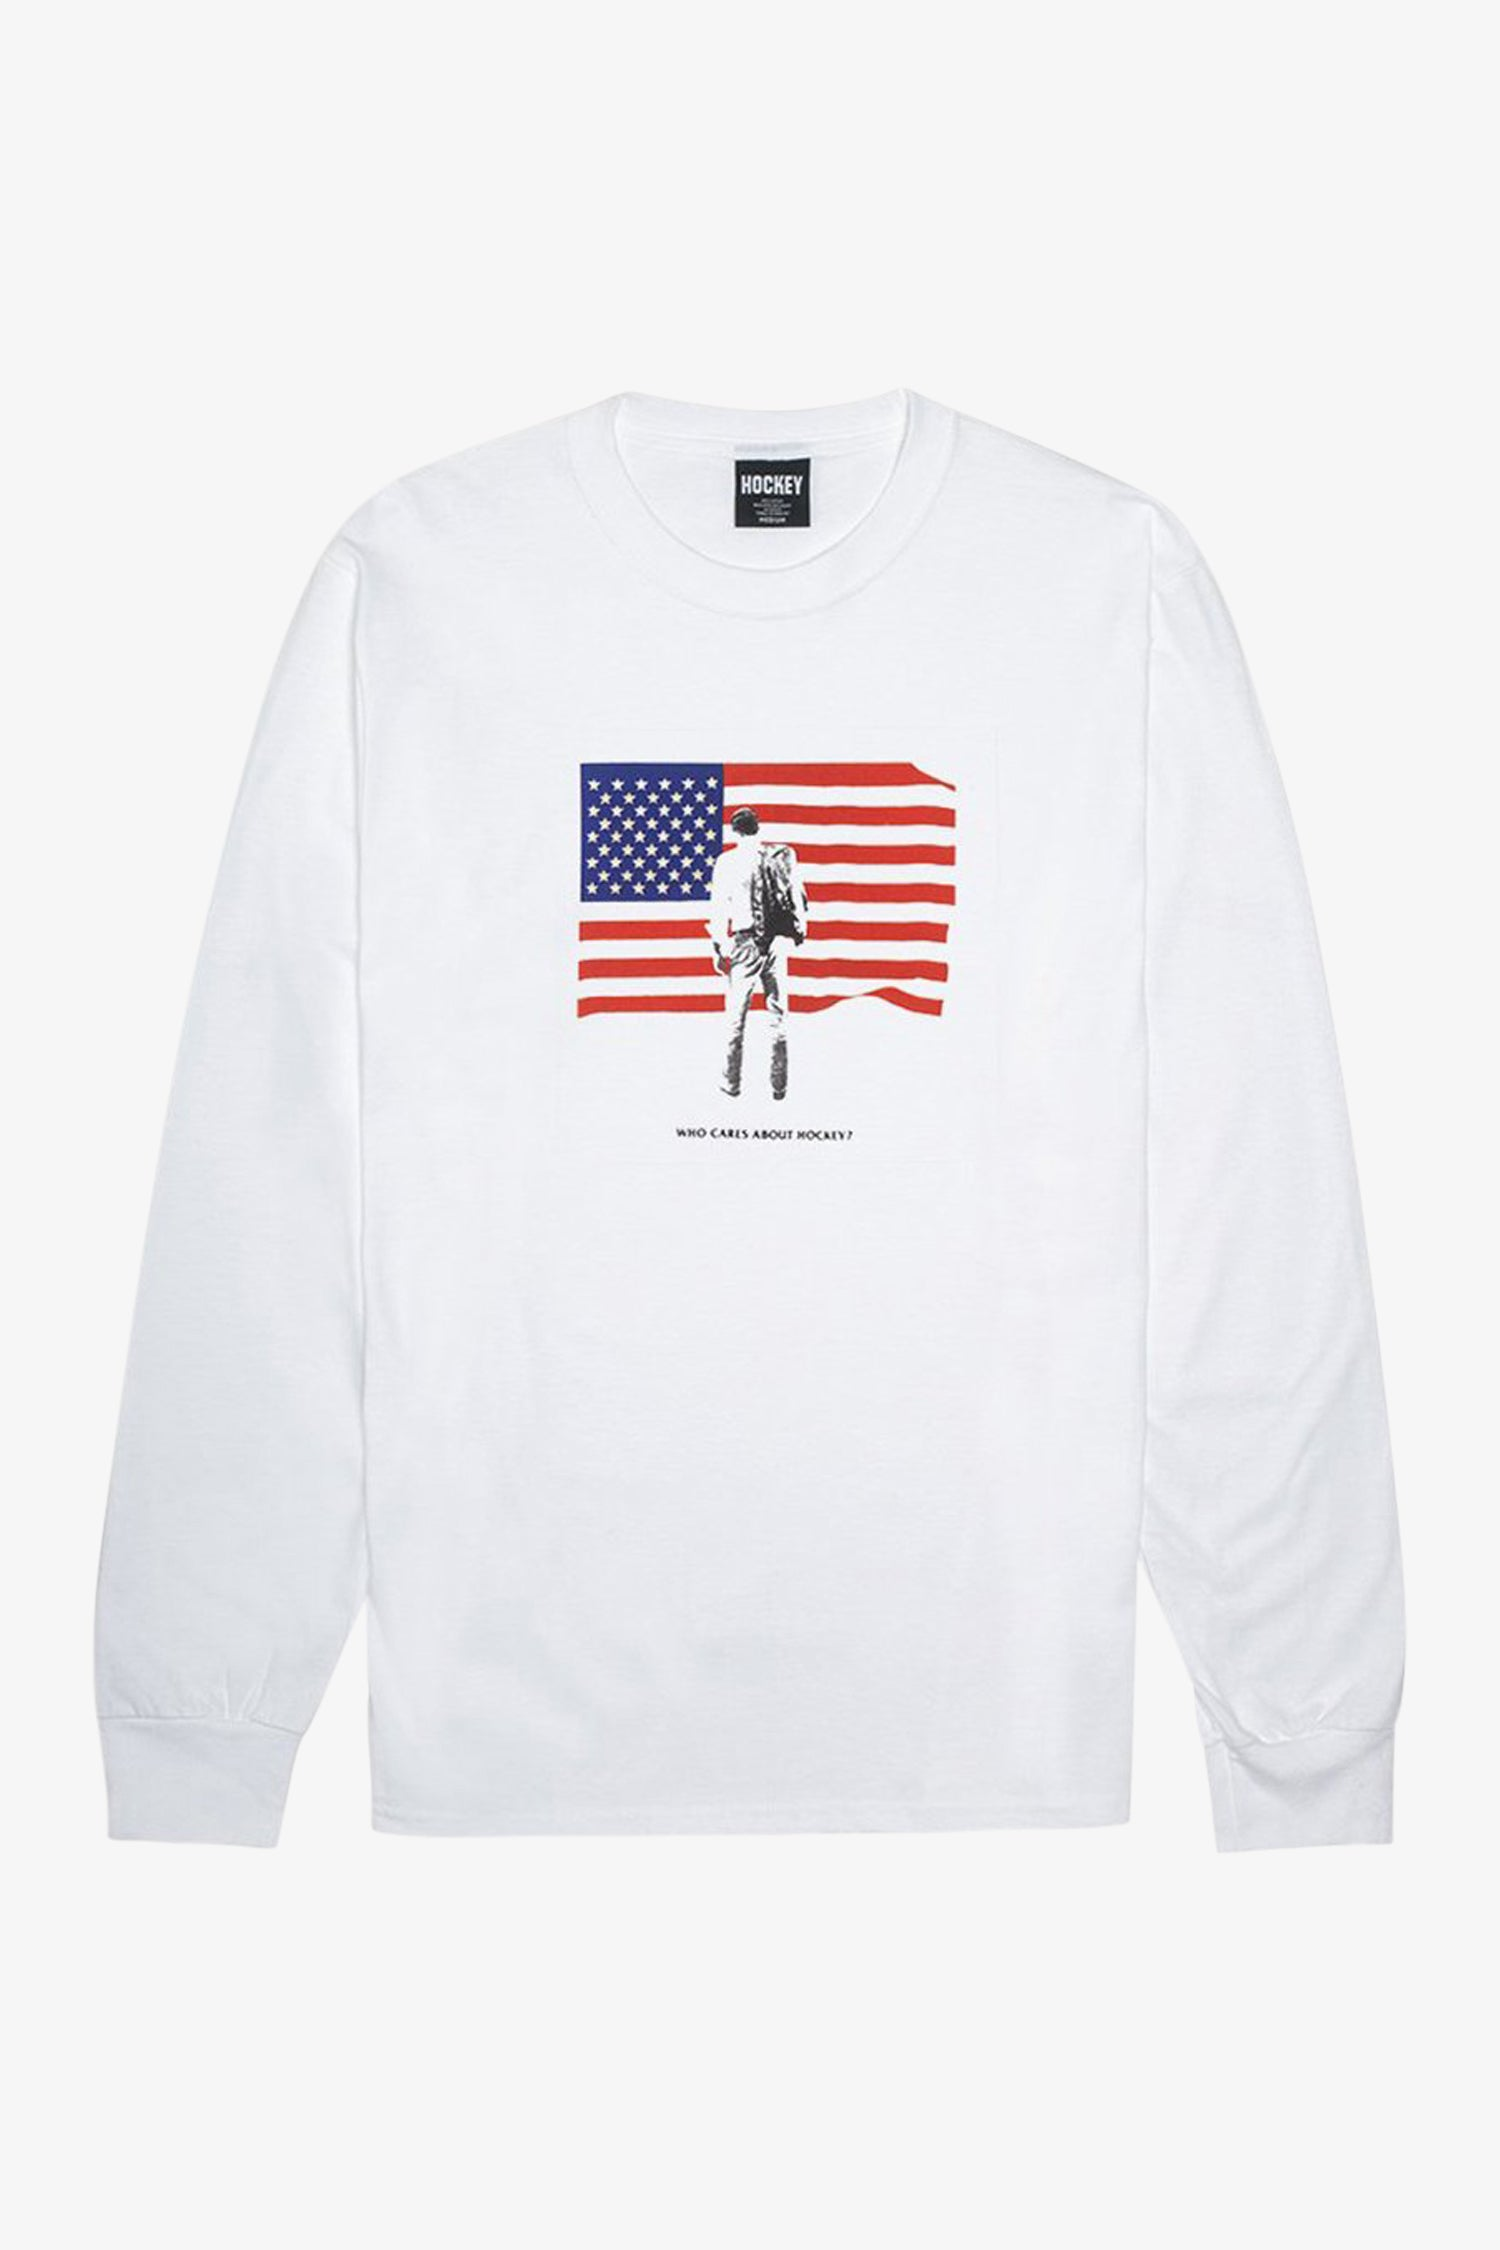 Selectshop FRAME - HOCKEY Patriot Long Sleeve T-Shirt Dubai